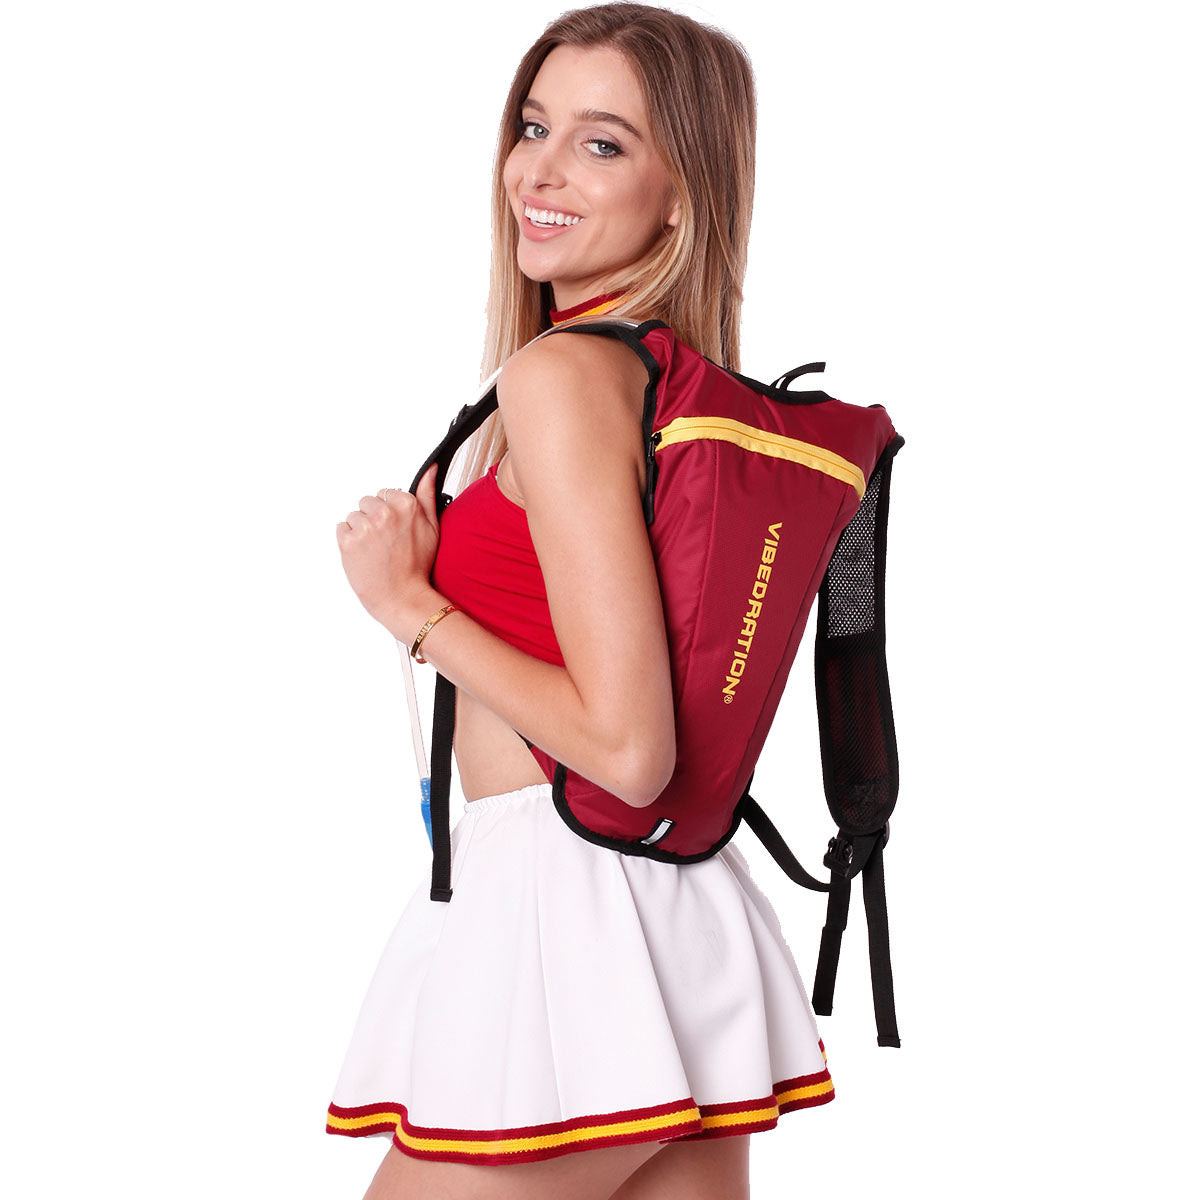 Side view of female wearing maroon and gold hydration pack.